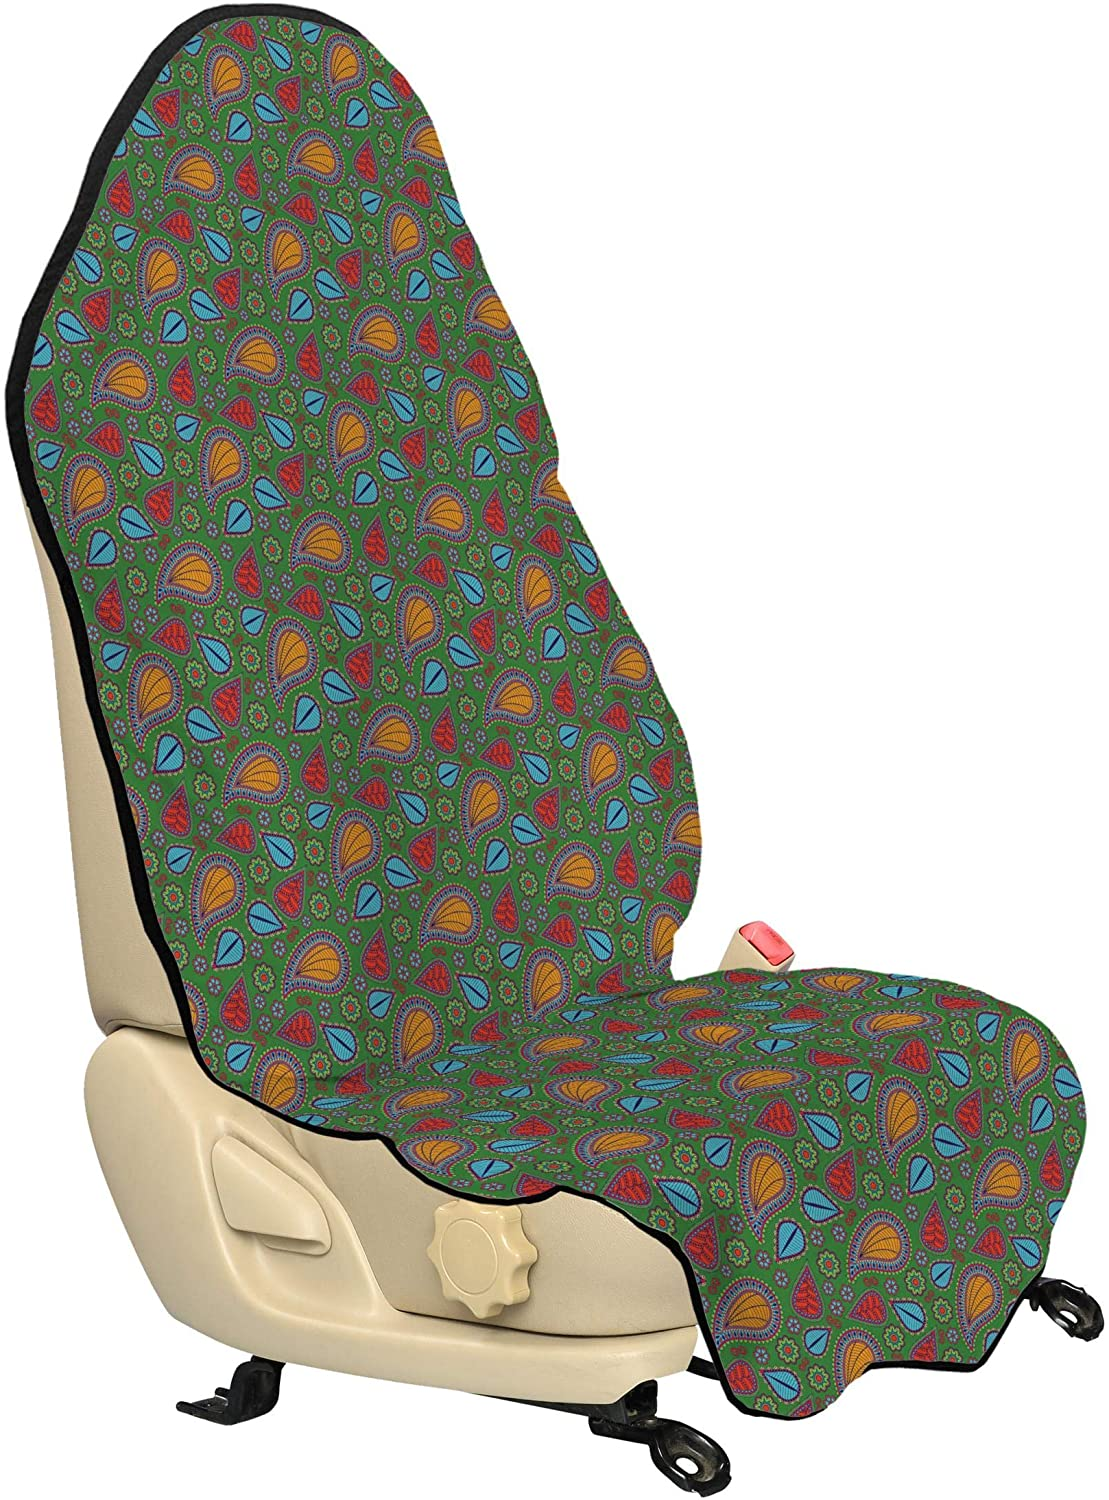 Ambesonne Ethnic Car Seat Hoodie, Image with Swirls Floral Details Paisley Design Fern Green Backdrop, Car Seat Cover Protector Non Slip Backing Universal Fit, 30